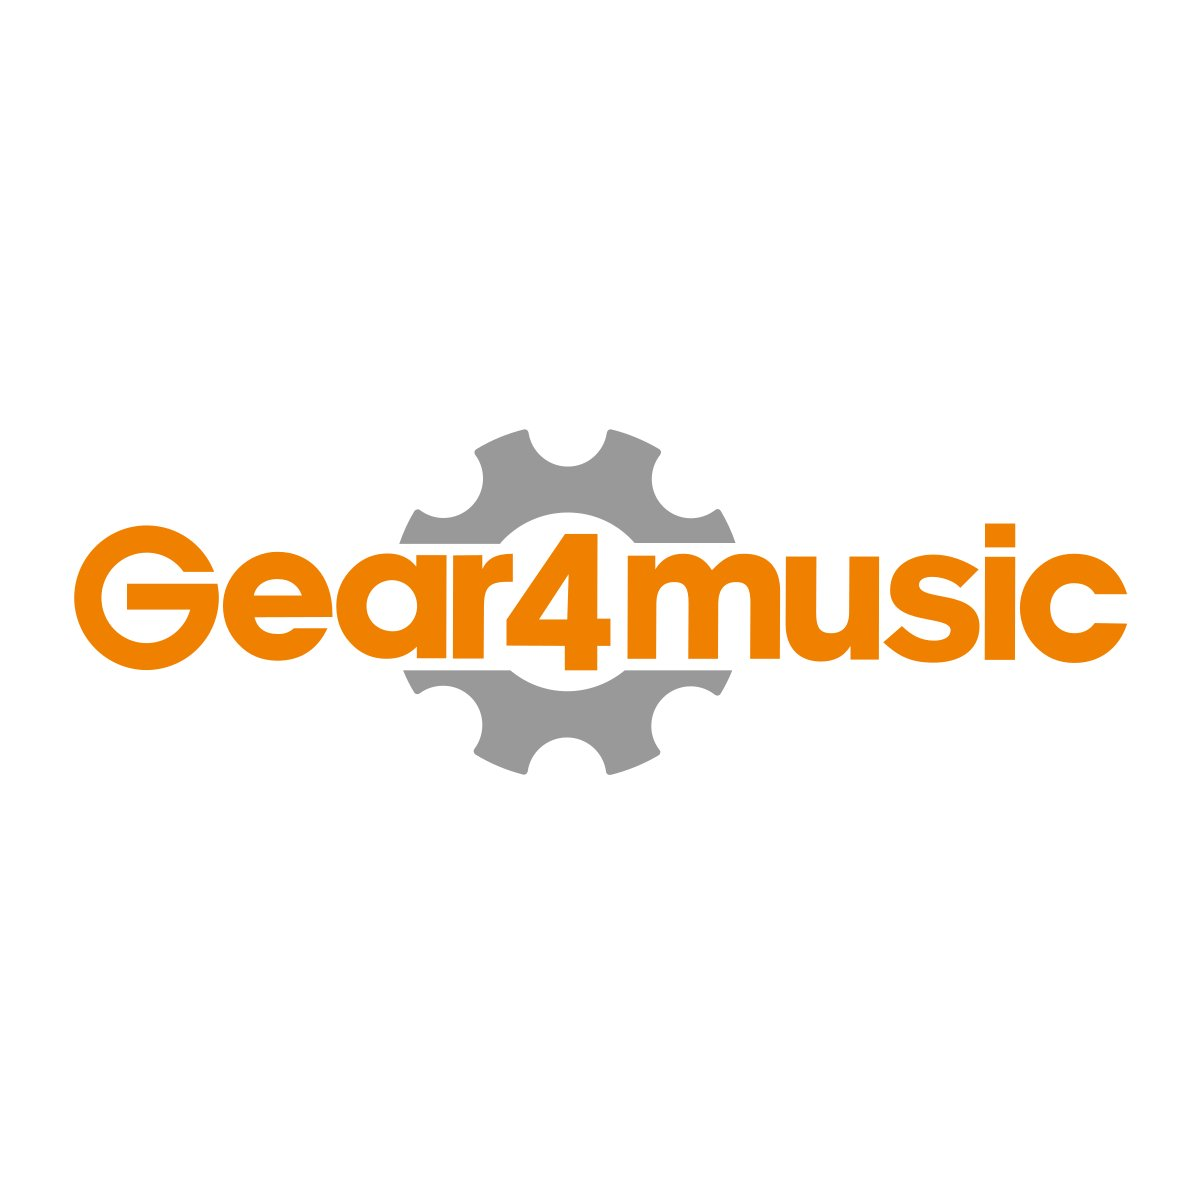 1/2-Junior-Konzertgitarre von Gear4music, Pink – Paket